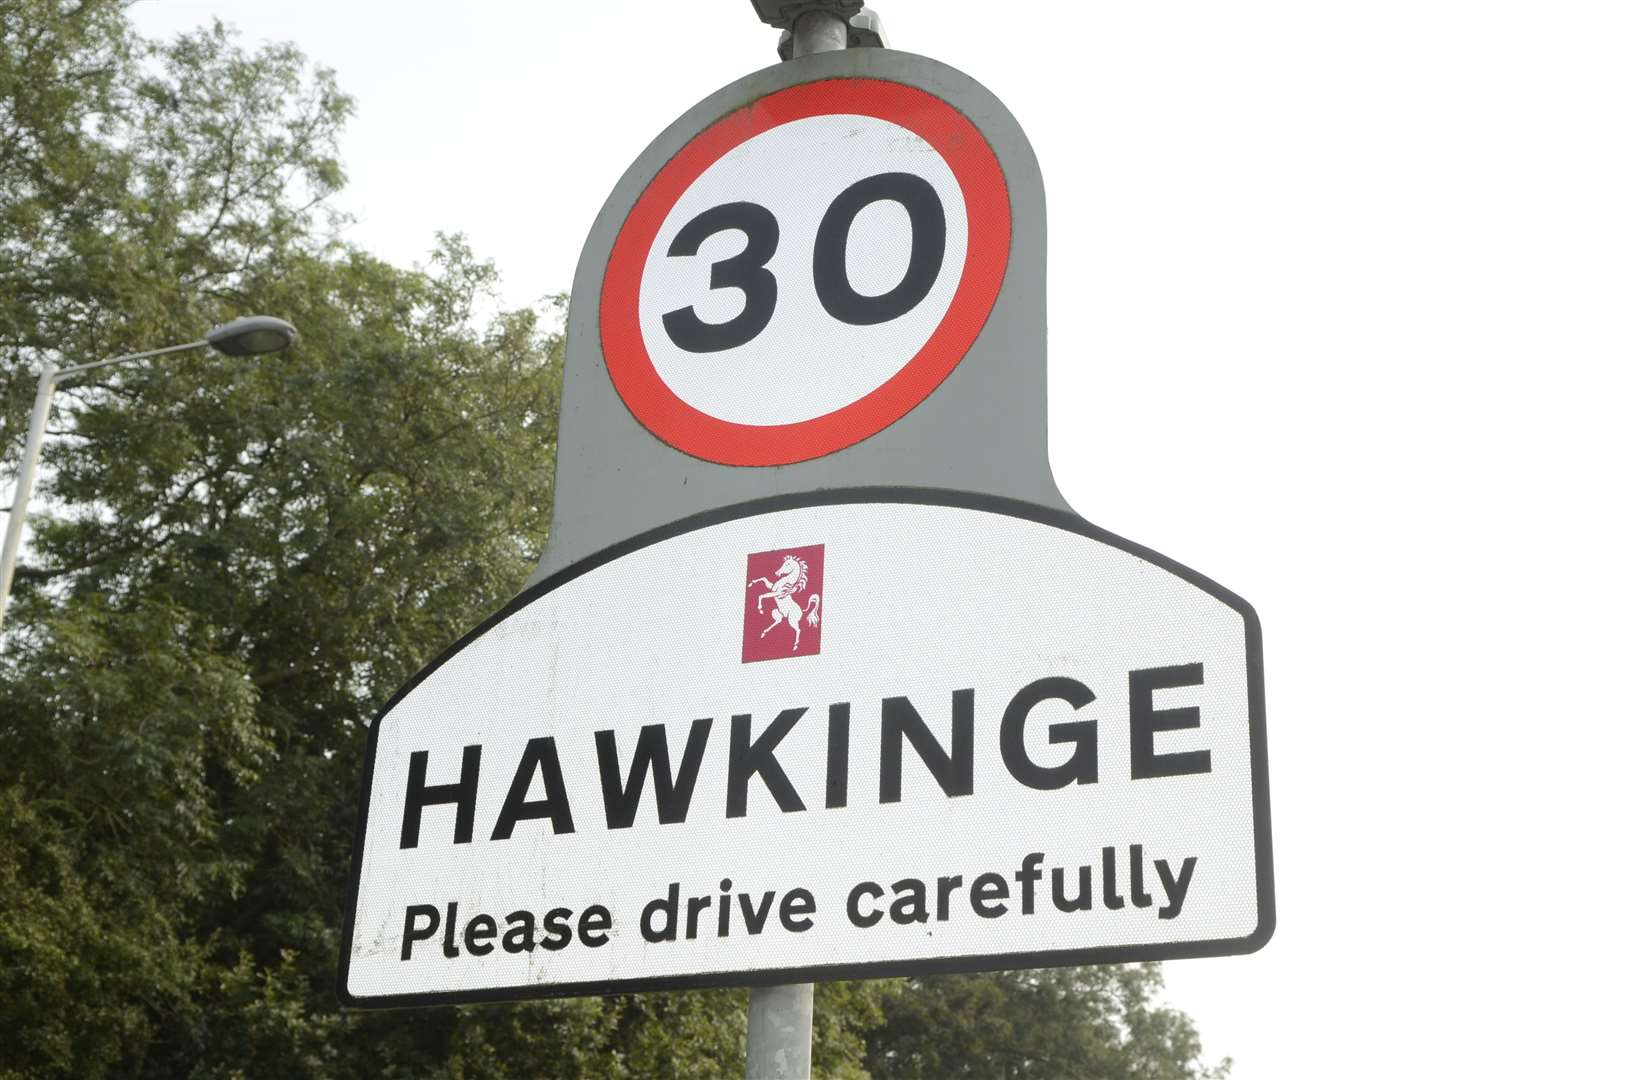 Hawkinge Town Council are taking action